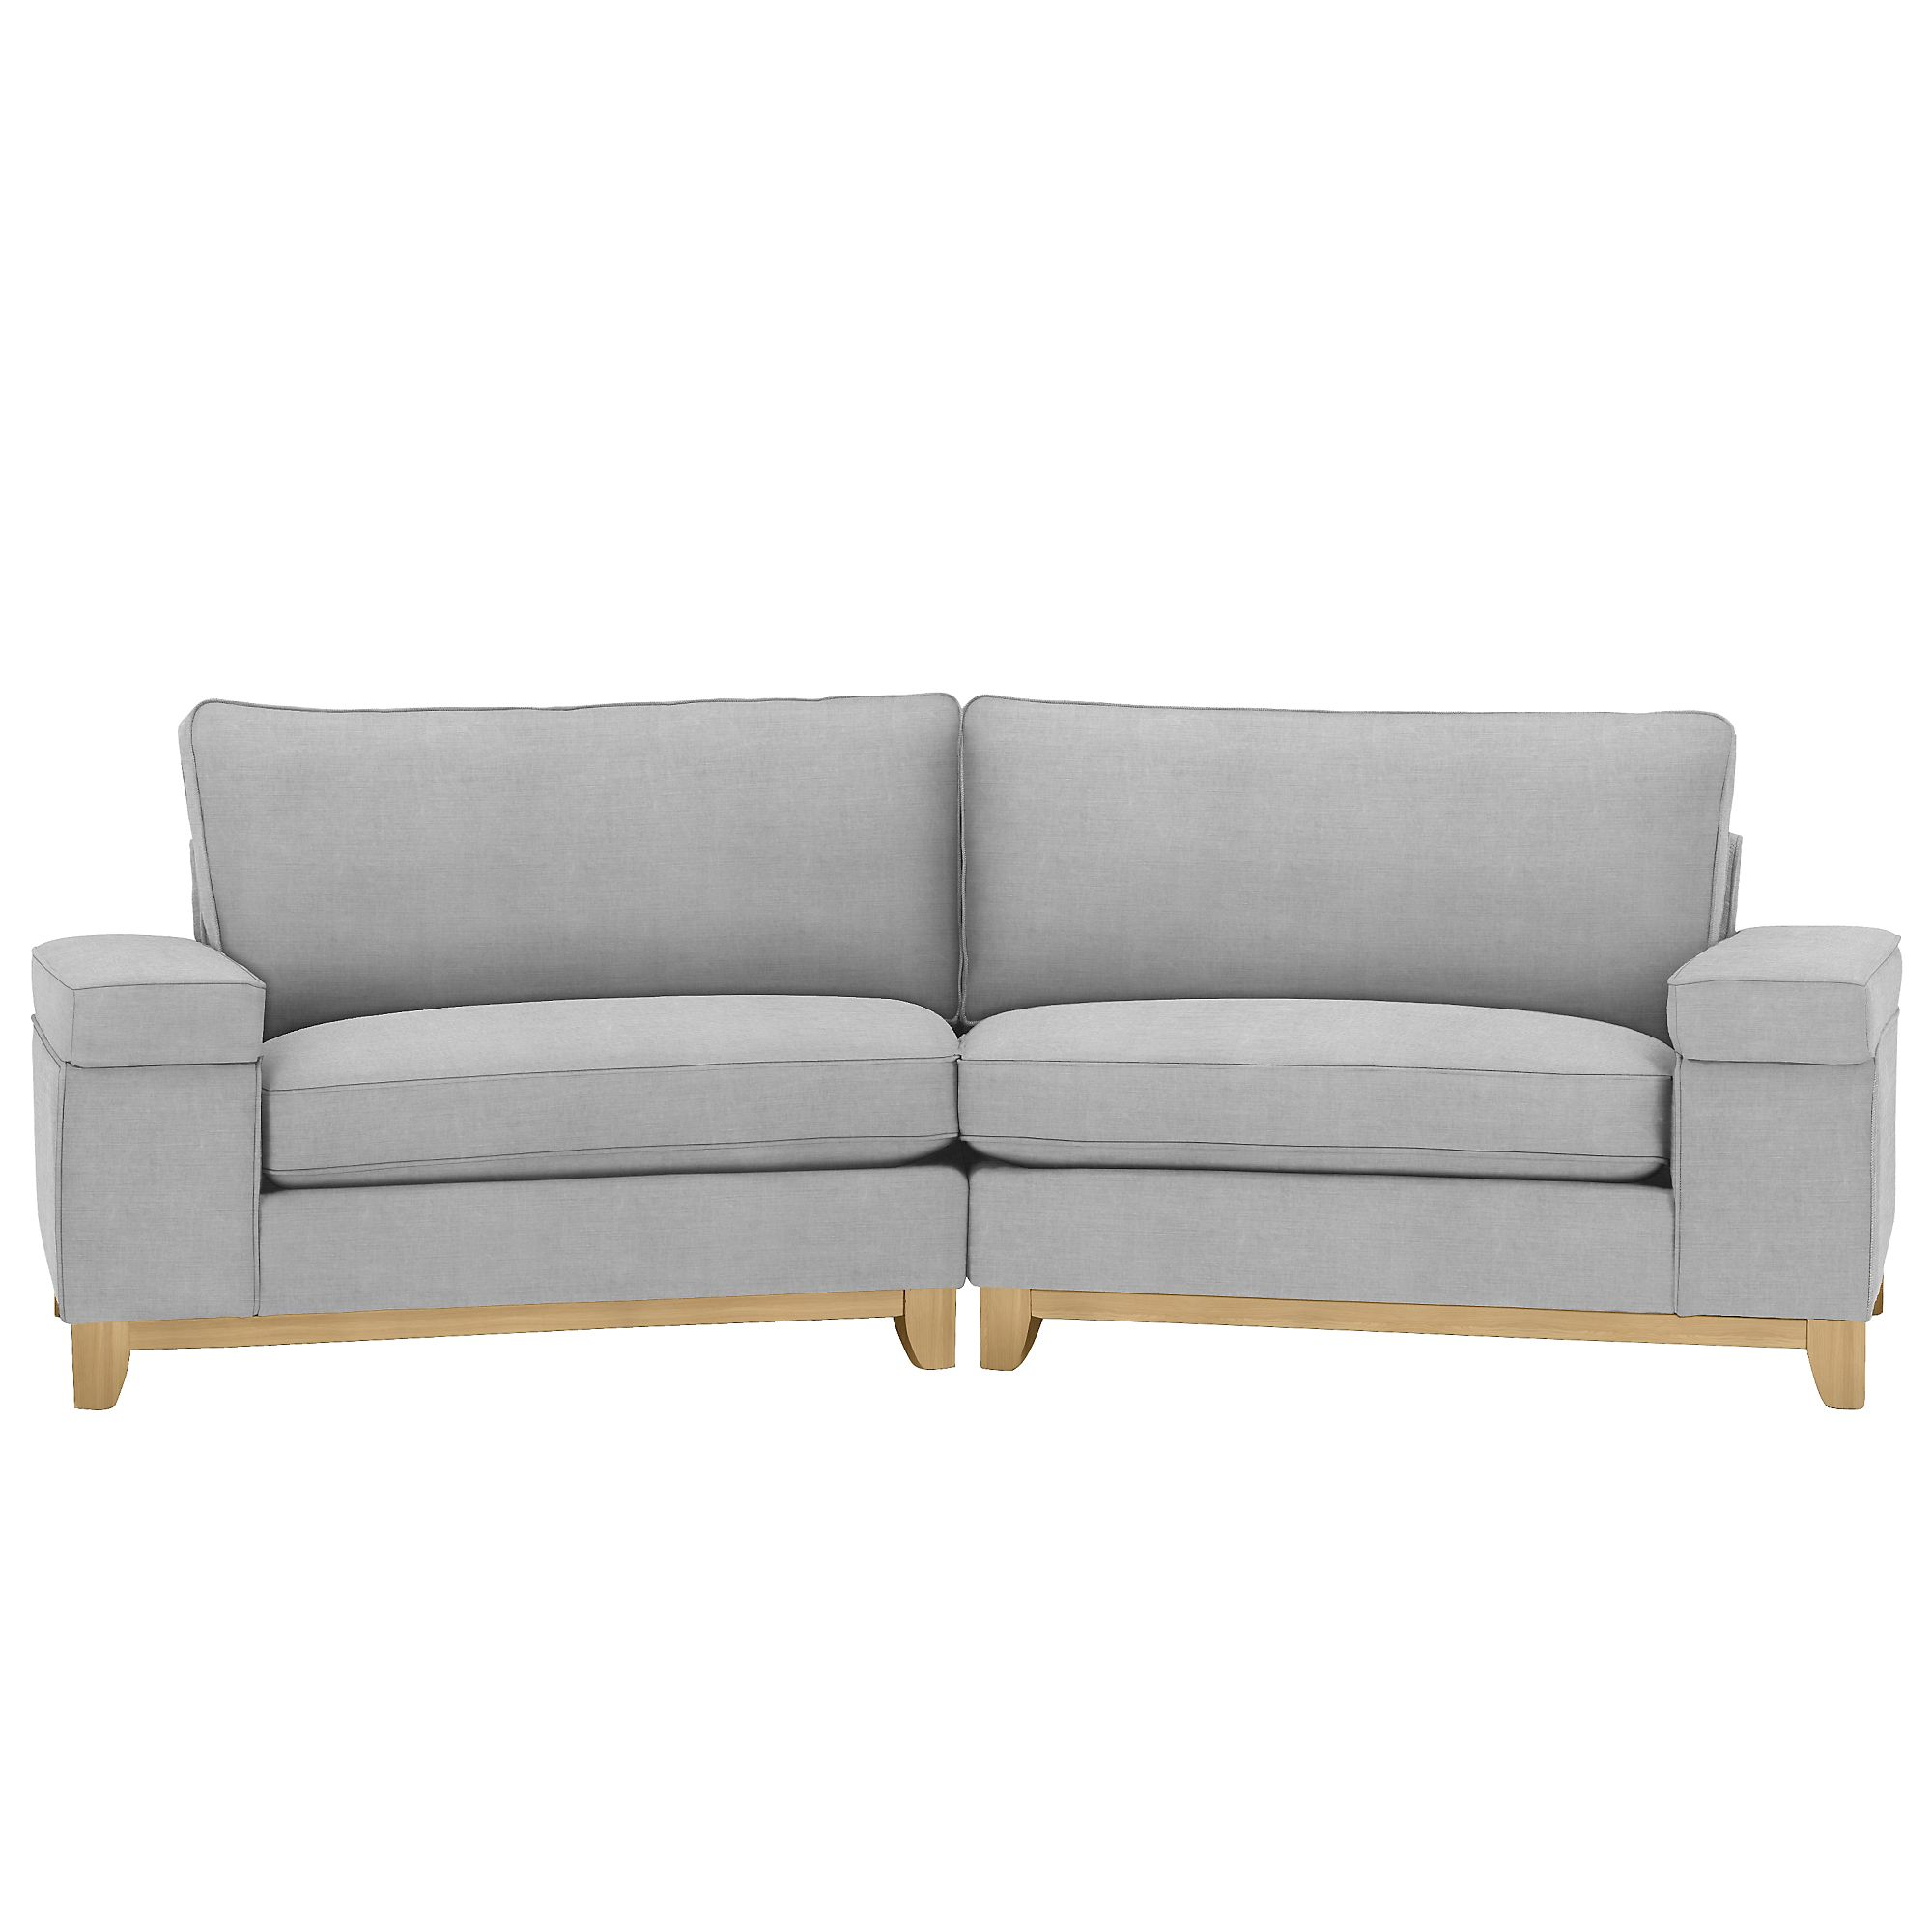 John Lewis Addington Grand Angled Sofa